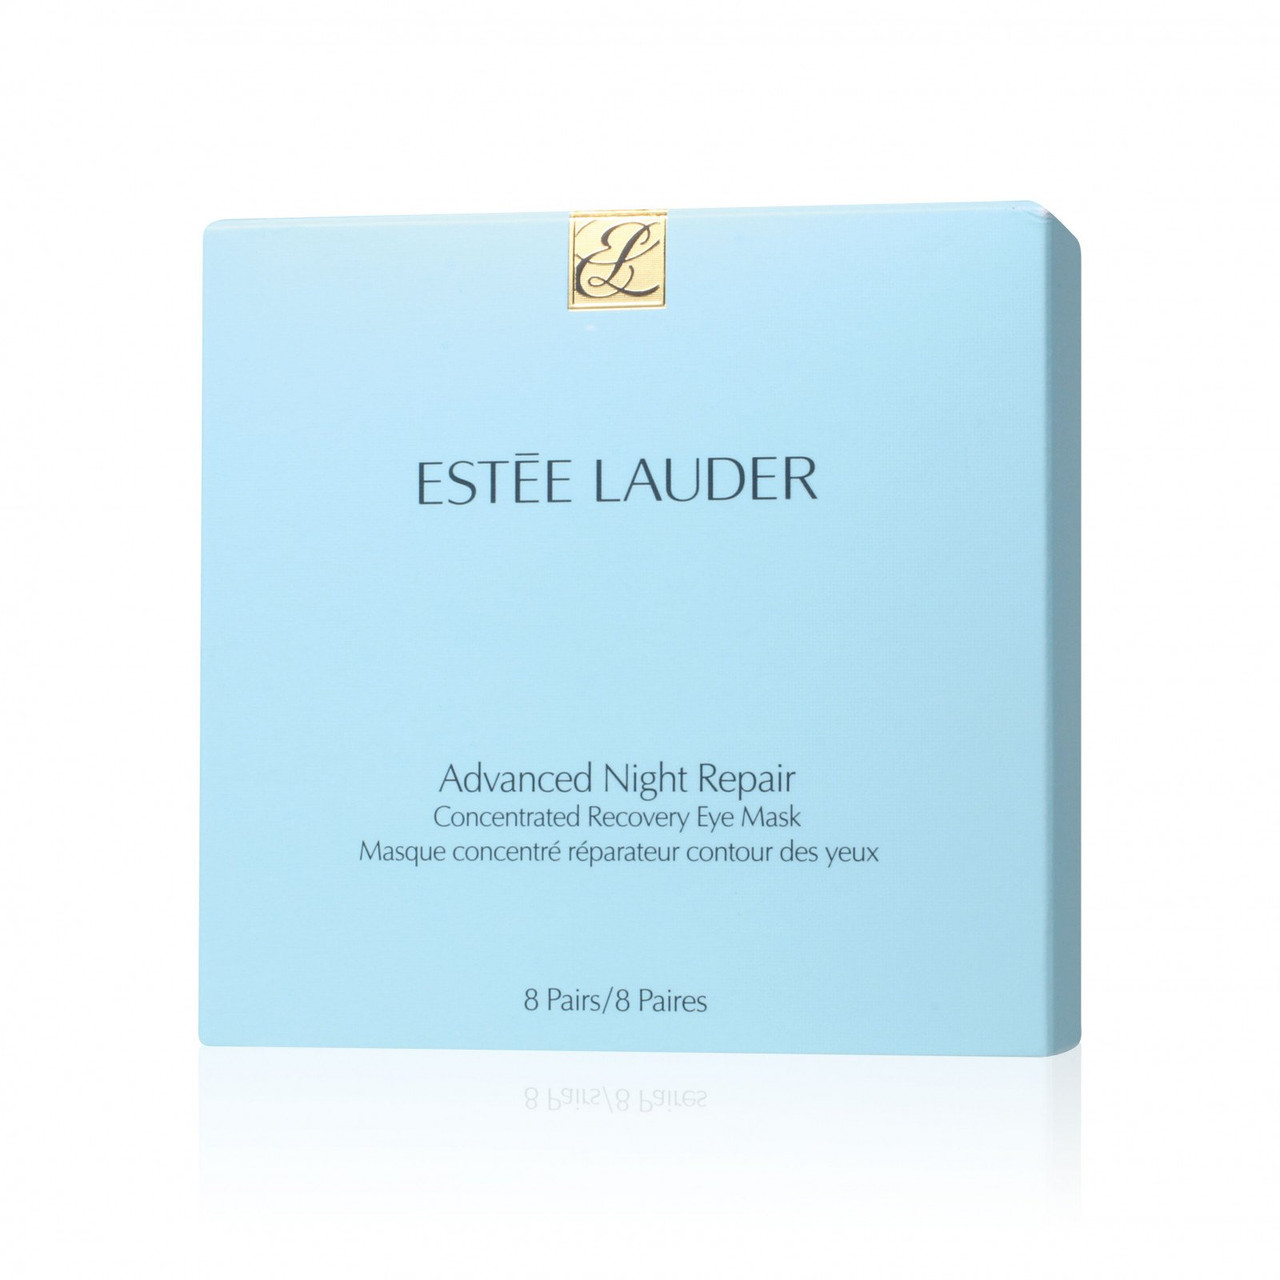 Estee Lauder Advanced Night Repair Concentrated Recovery Eye Mask Bonjour Global